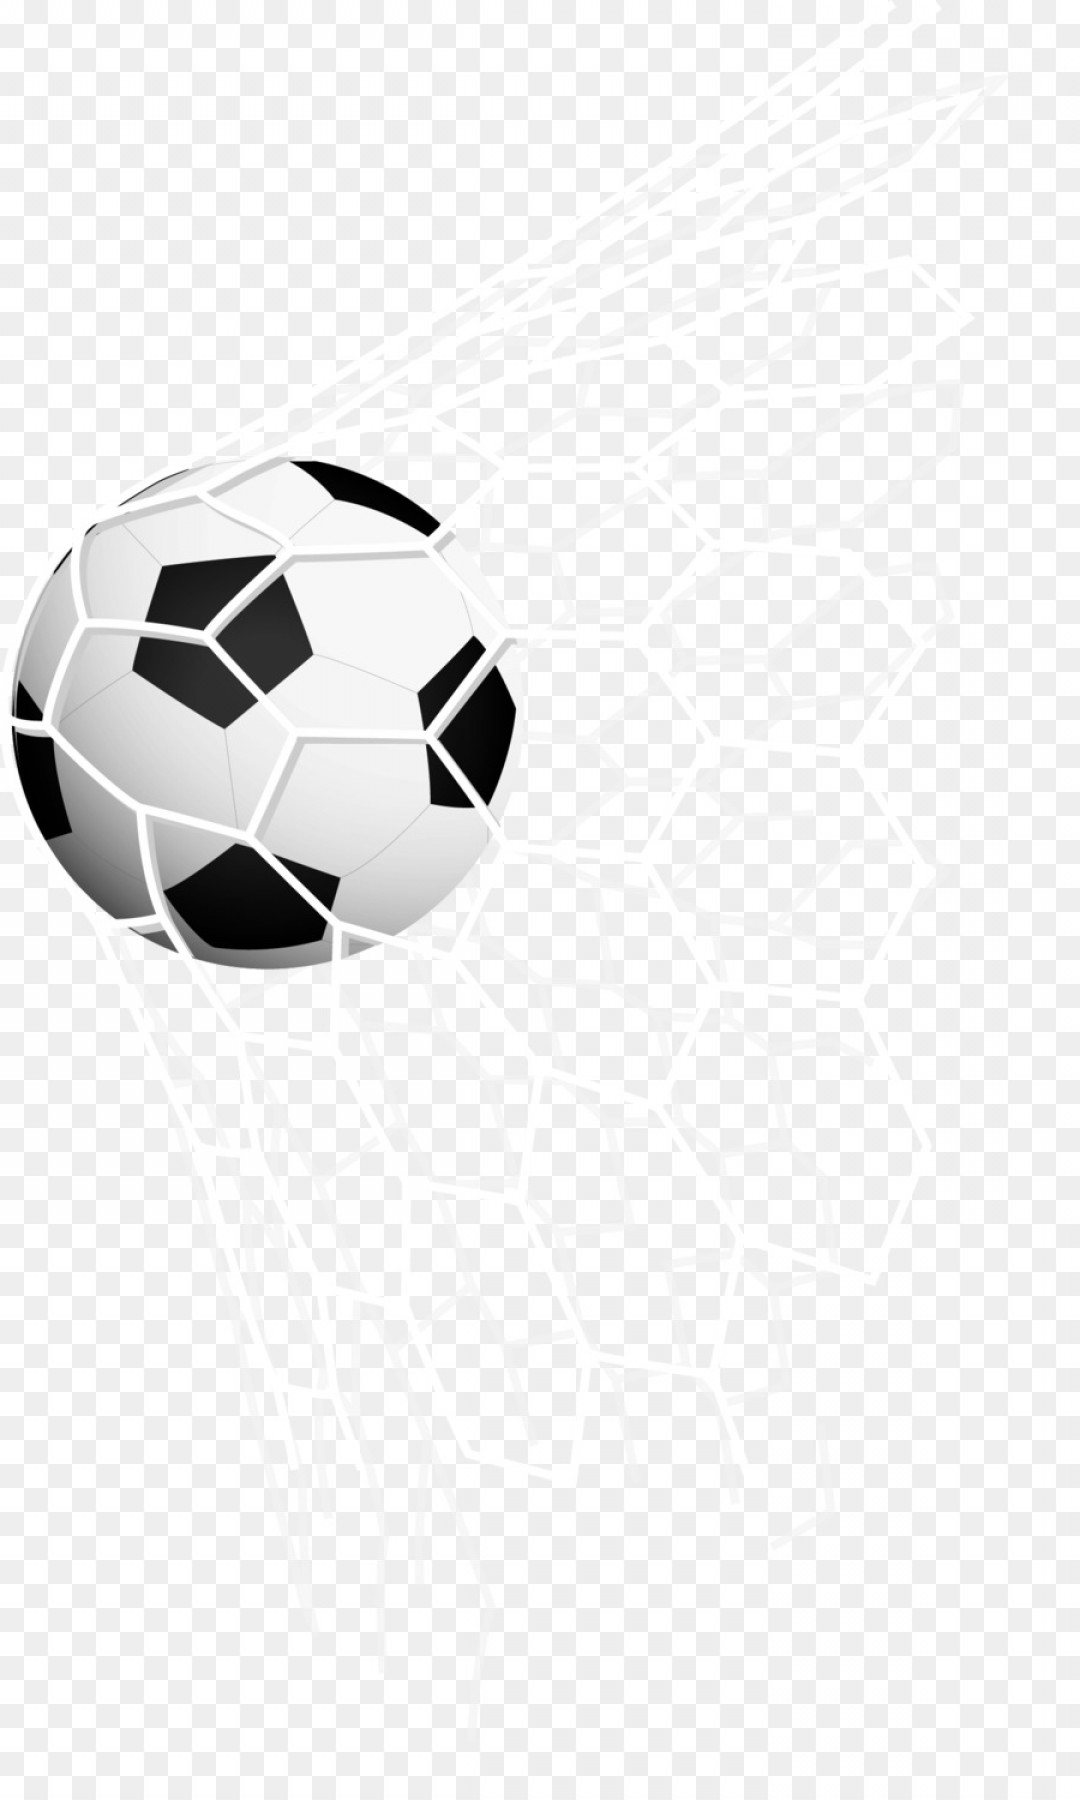 Football Vector Wallpaper: Png Football Goal Wallpaper Soccer Kick Into The Net I